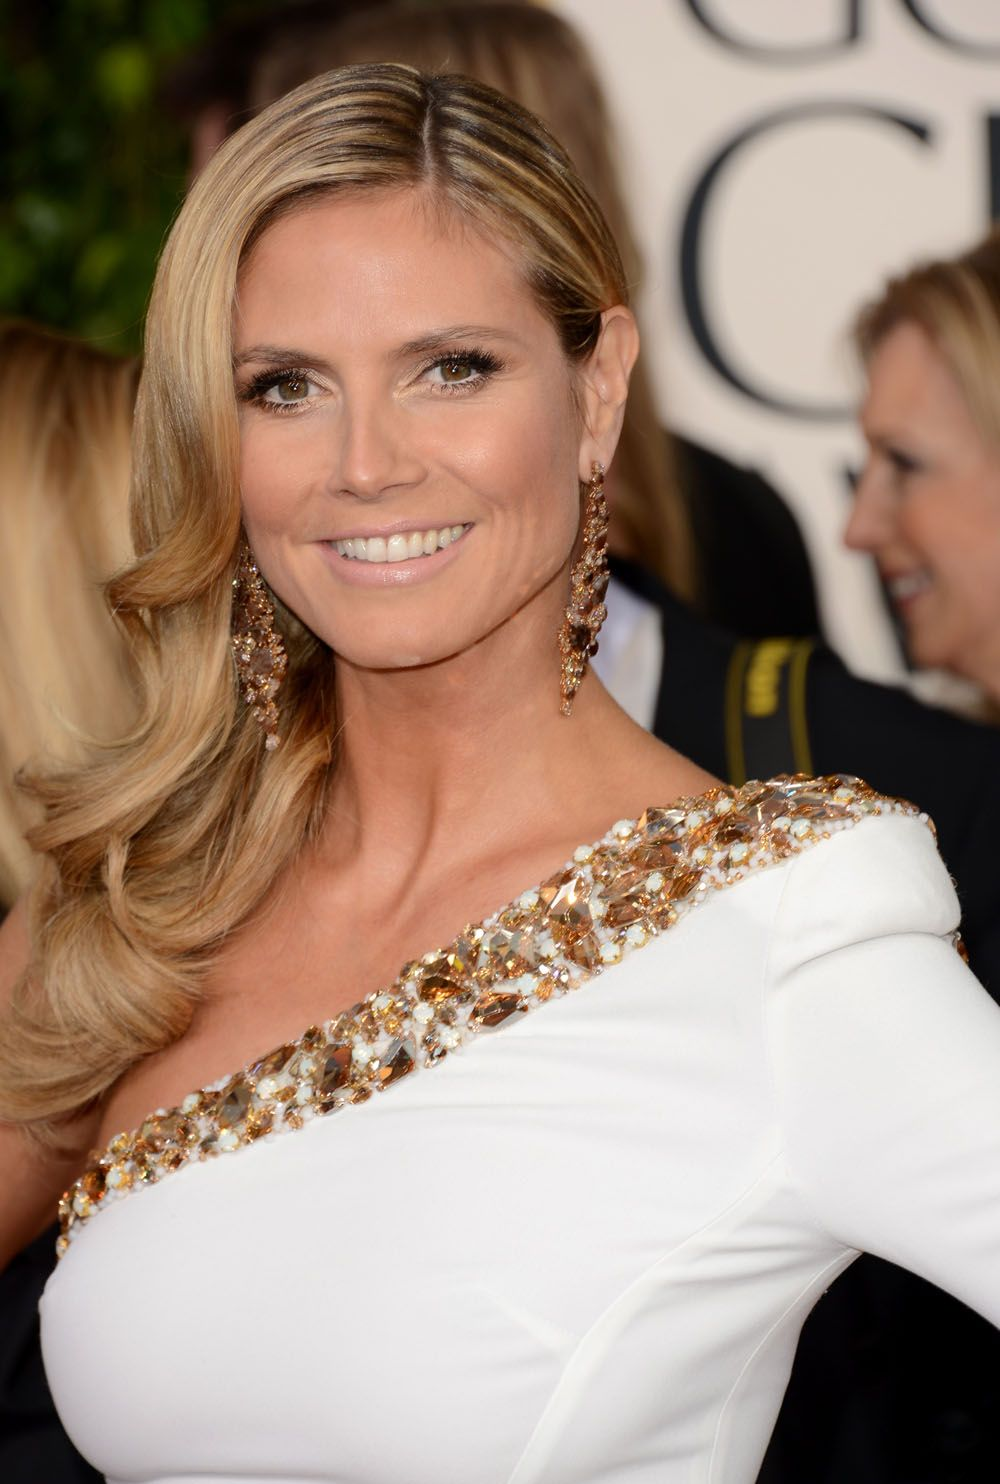 Discussion on this topic: 11 Heidi Klum Hairstyles: Classic Hairstyle, 11-heidi-klum-hairstyles-classic-hairstyle/